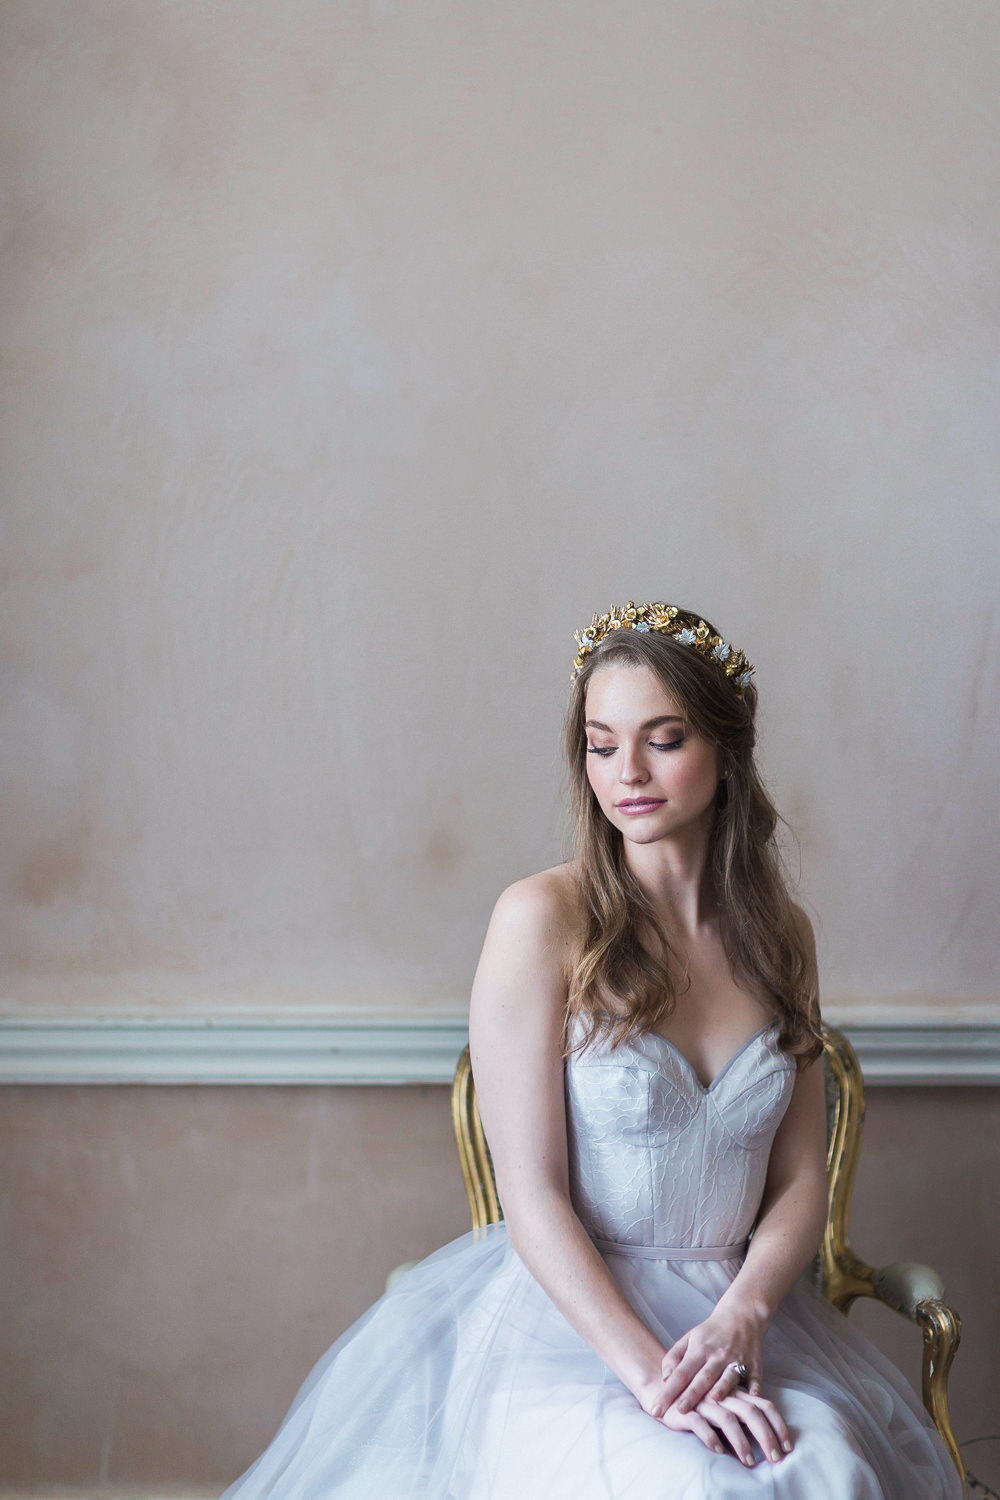 Modern Ballet Inspired Editorial Fine Art Somerley House Bride Lilac Dress Naomi Neoh Samantha Walden Gold Floral Headpiece Tiara | Romantic Soft Wedding Ideas Siobhan H Photography